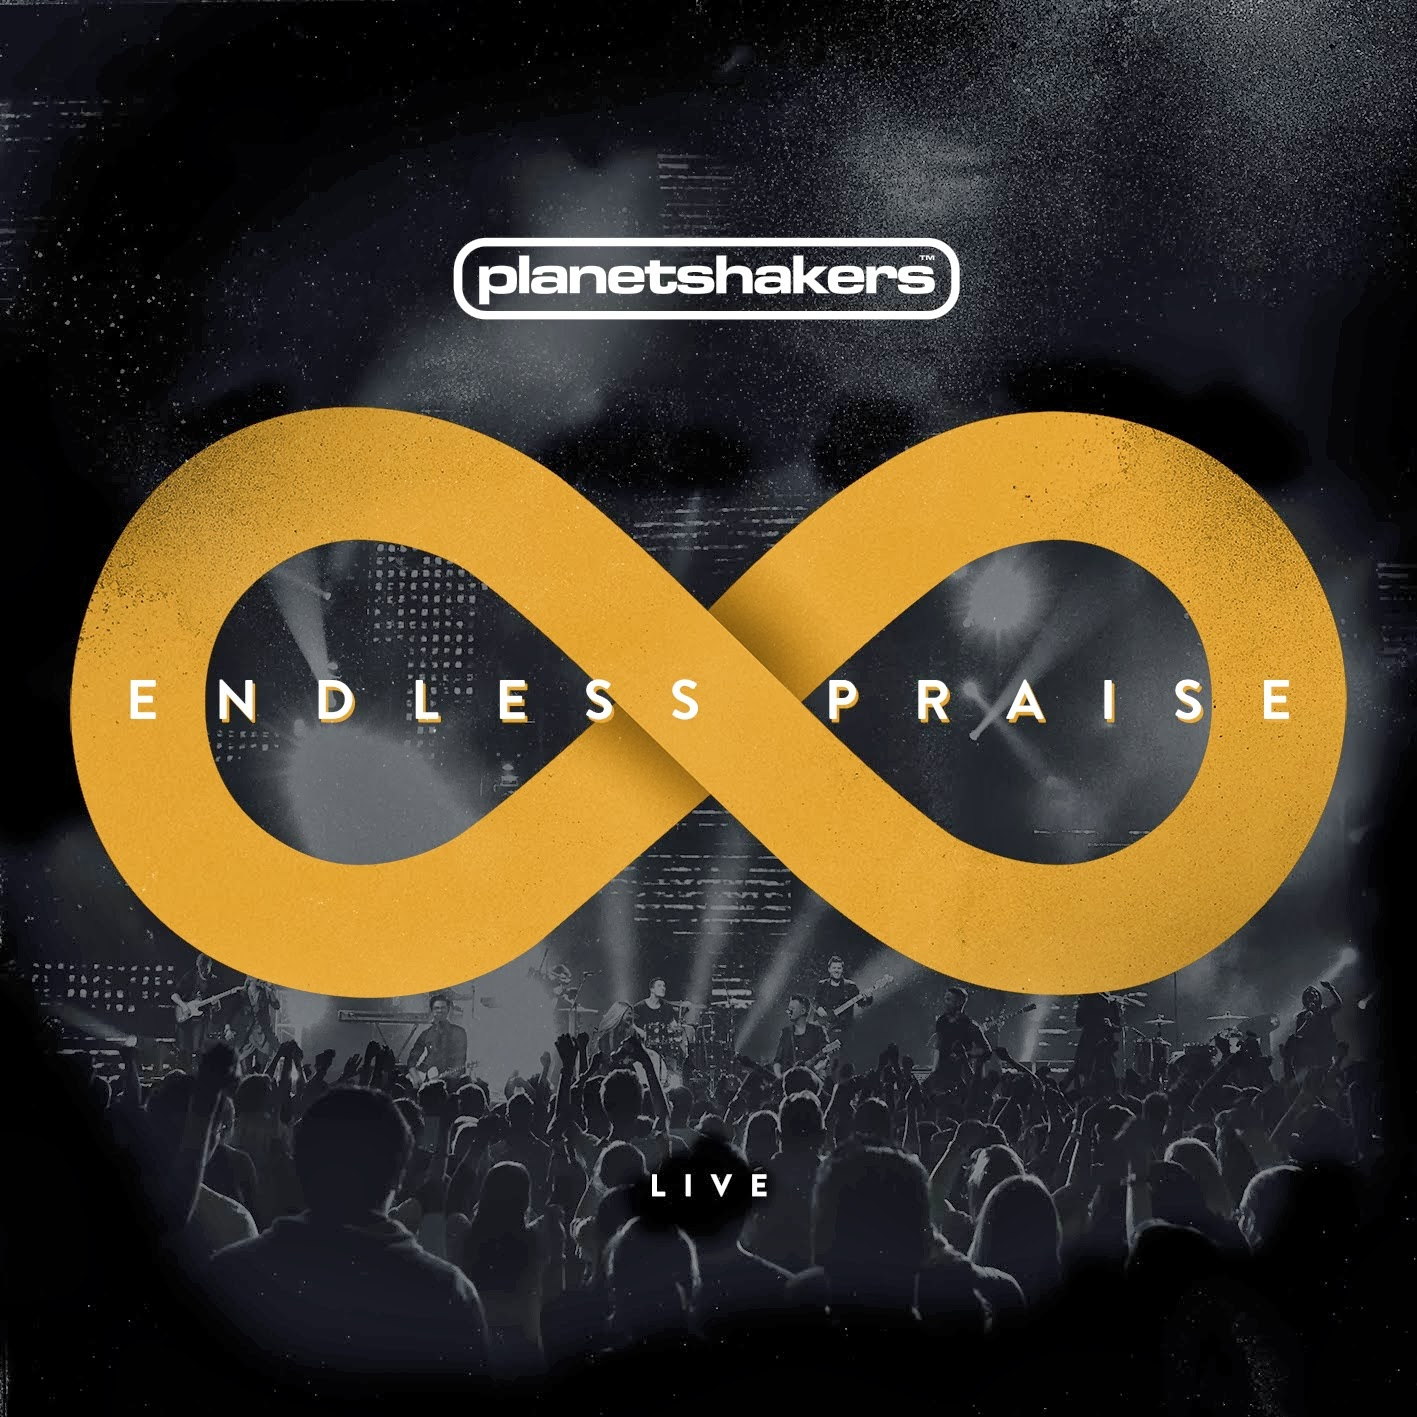 Planetshakers Band - Endless Praise Live 2014 English Christian Album Download